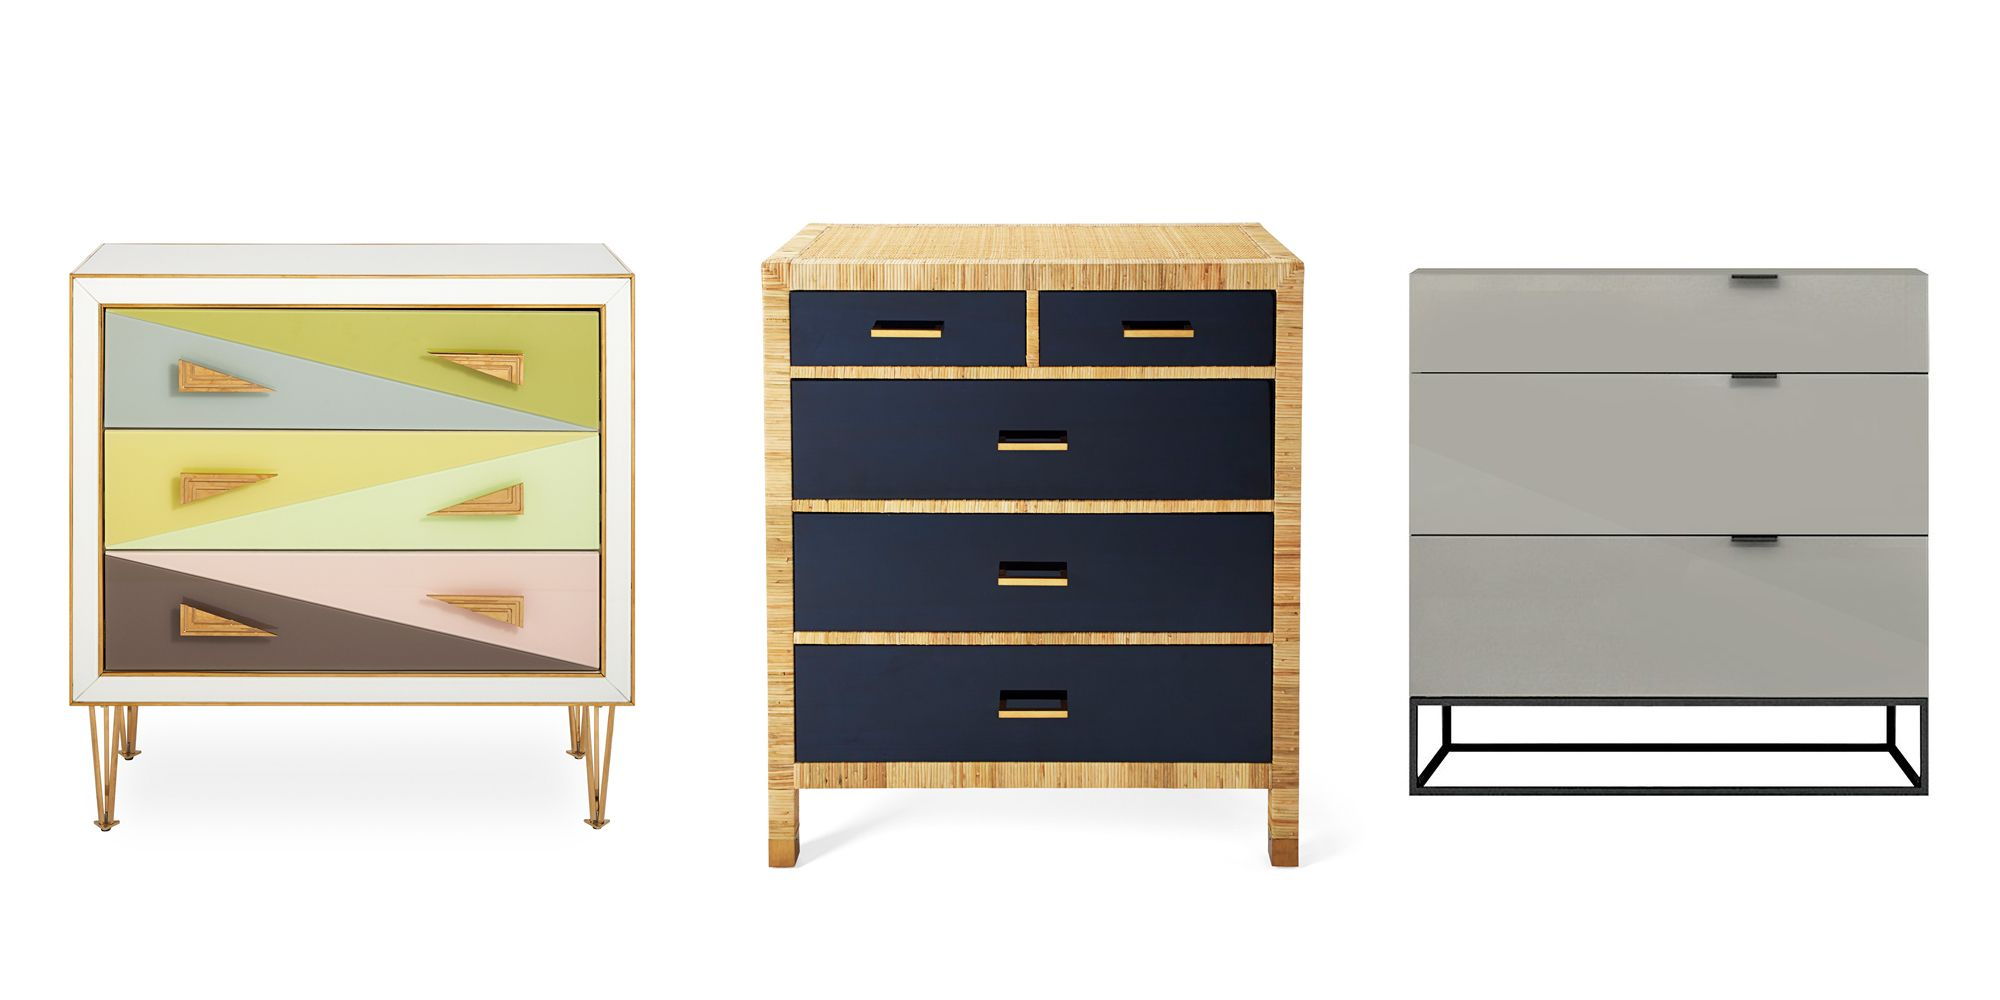 16 Small Dressers - Small Space Storage